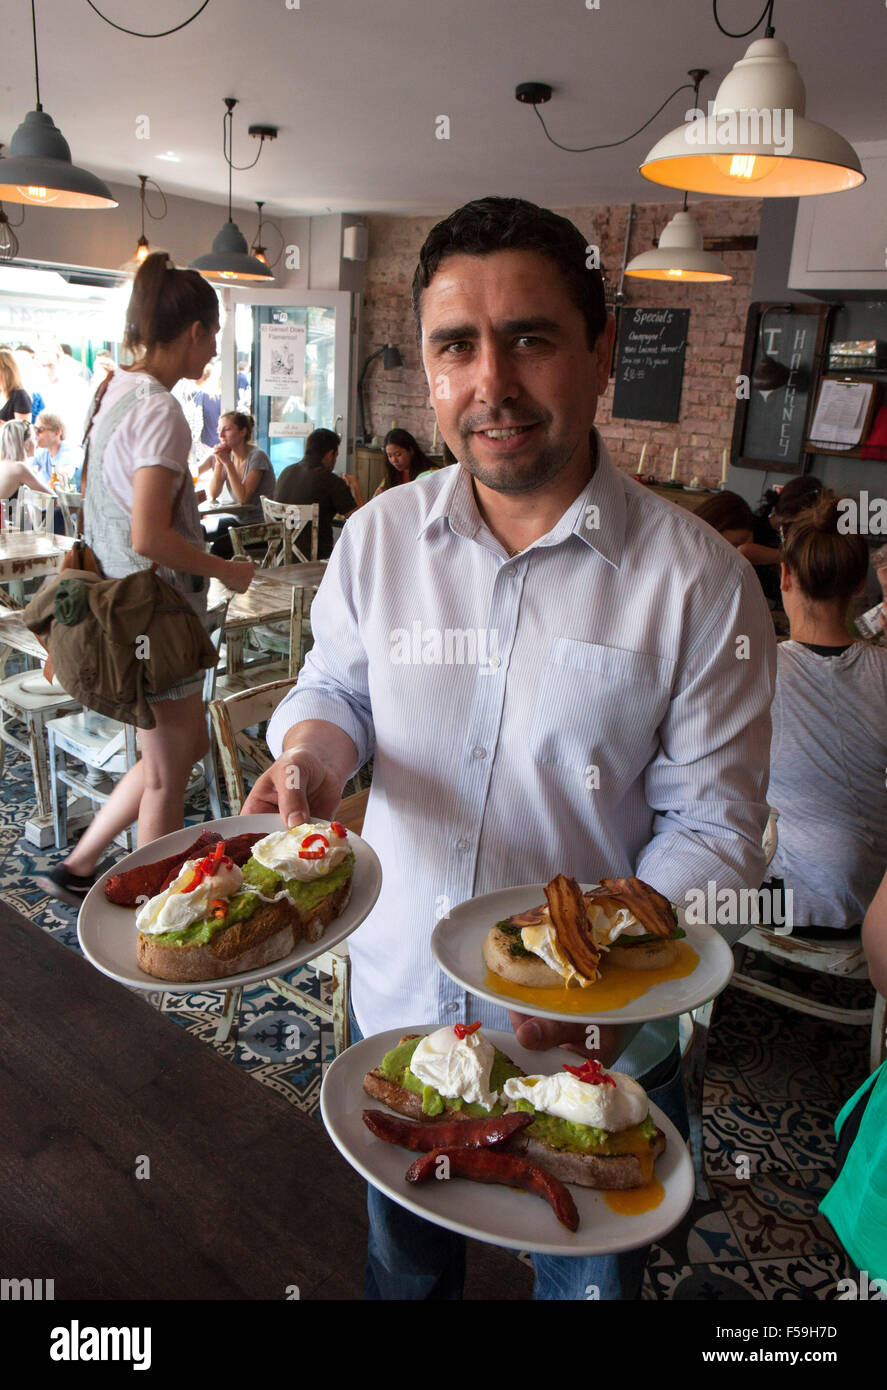 Broadway Market, London E8: El Ganso Spanish tapas restaurant: the manager Ihsan Tuncay with some breakfast dishes - Stock Image